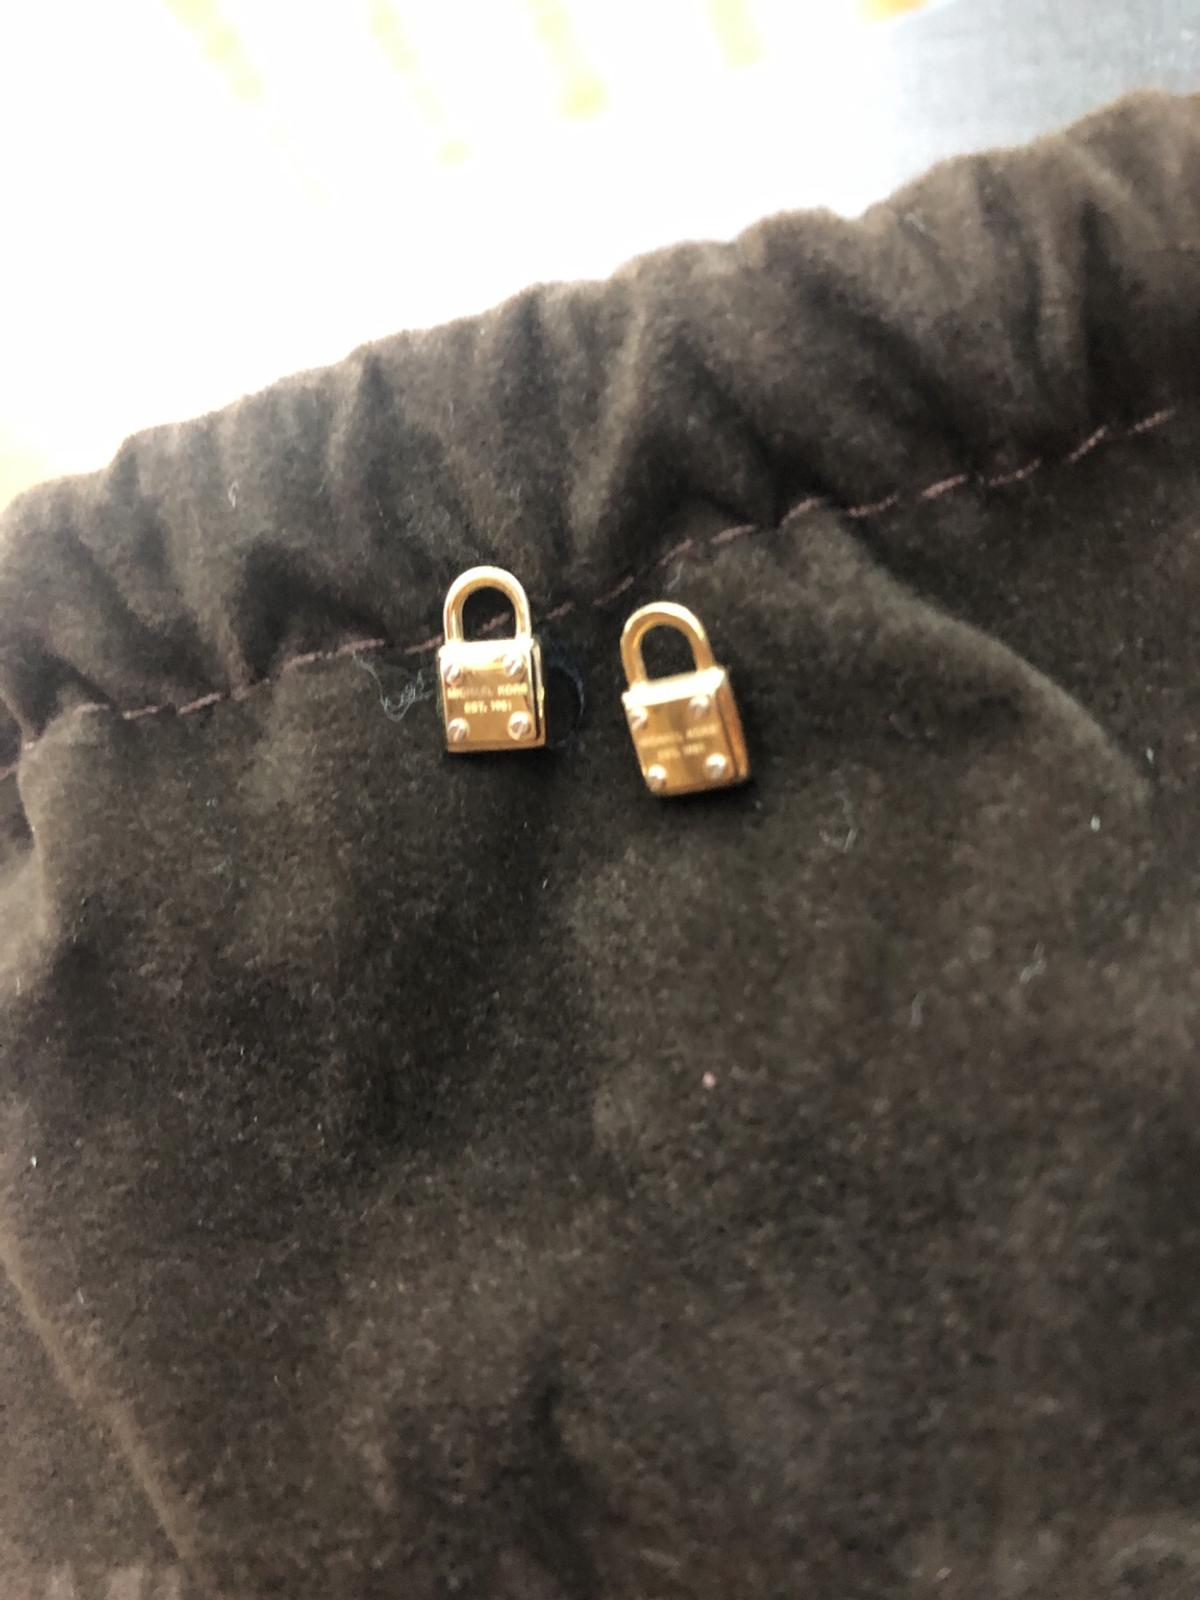 Tiny locks with silver screws and branding. No backs included.